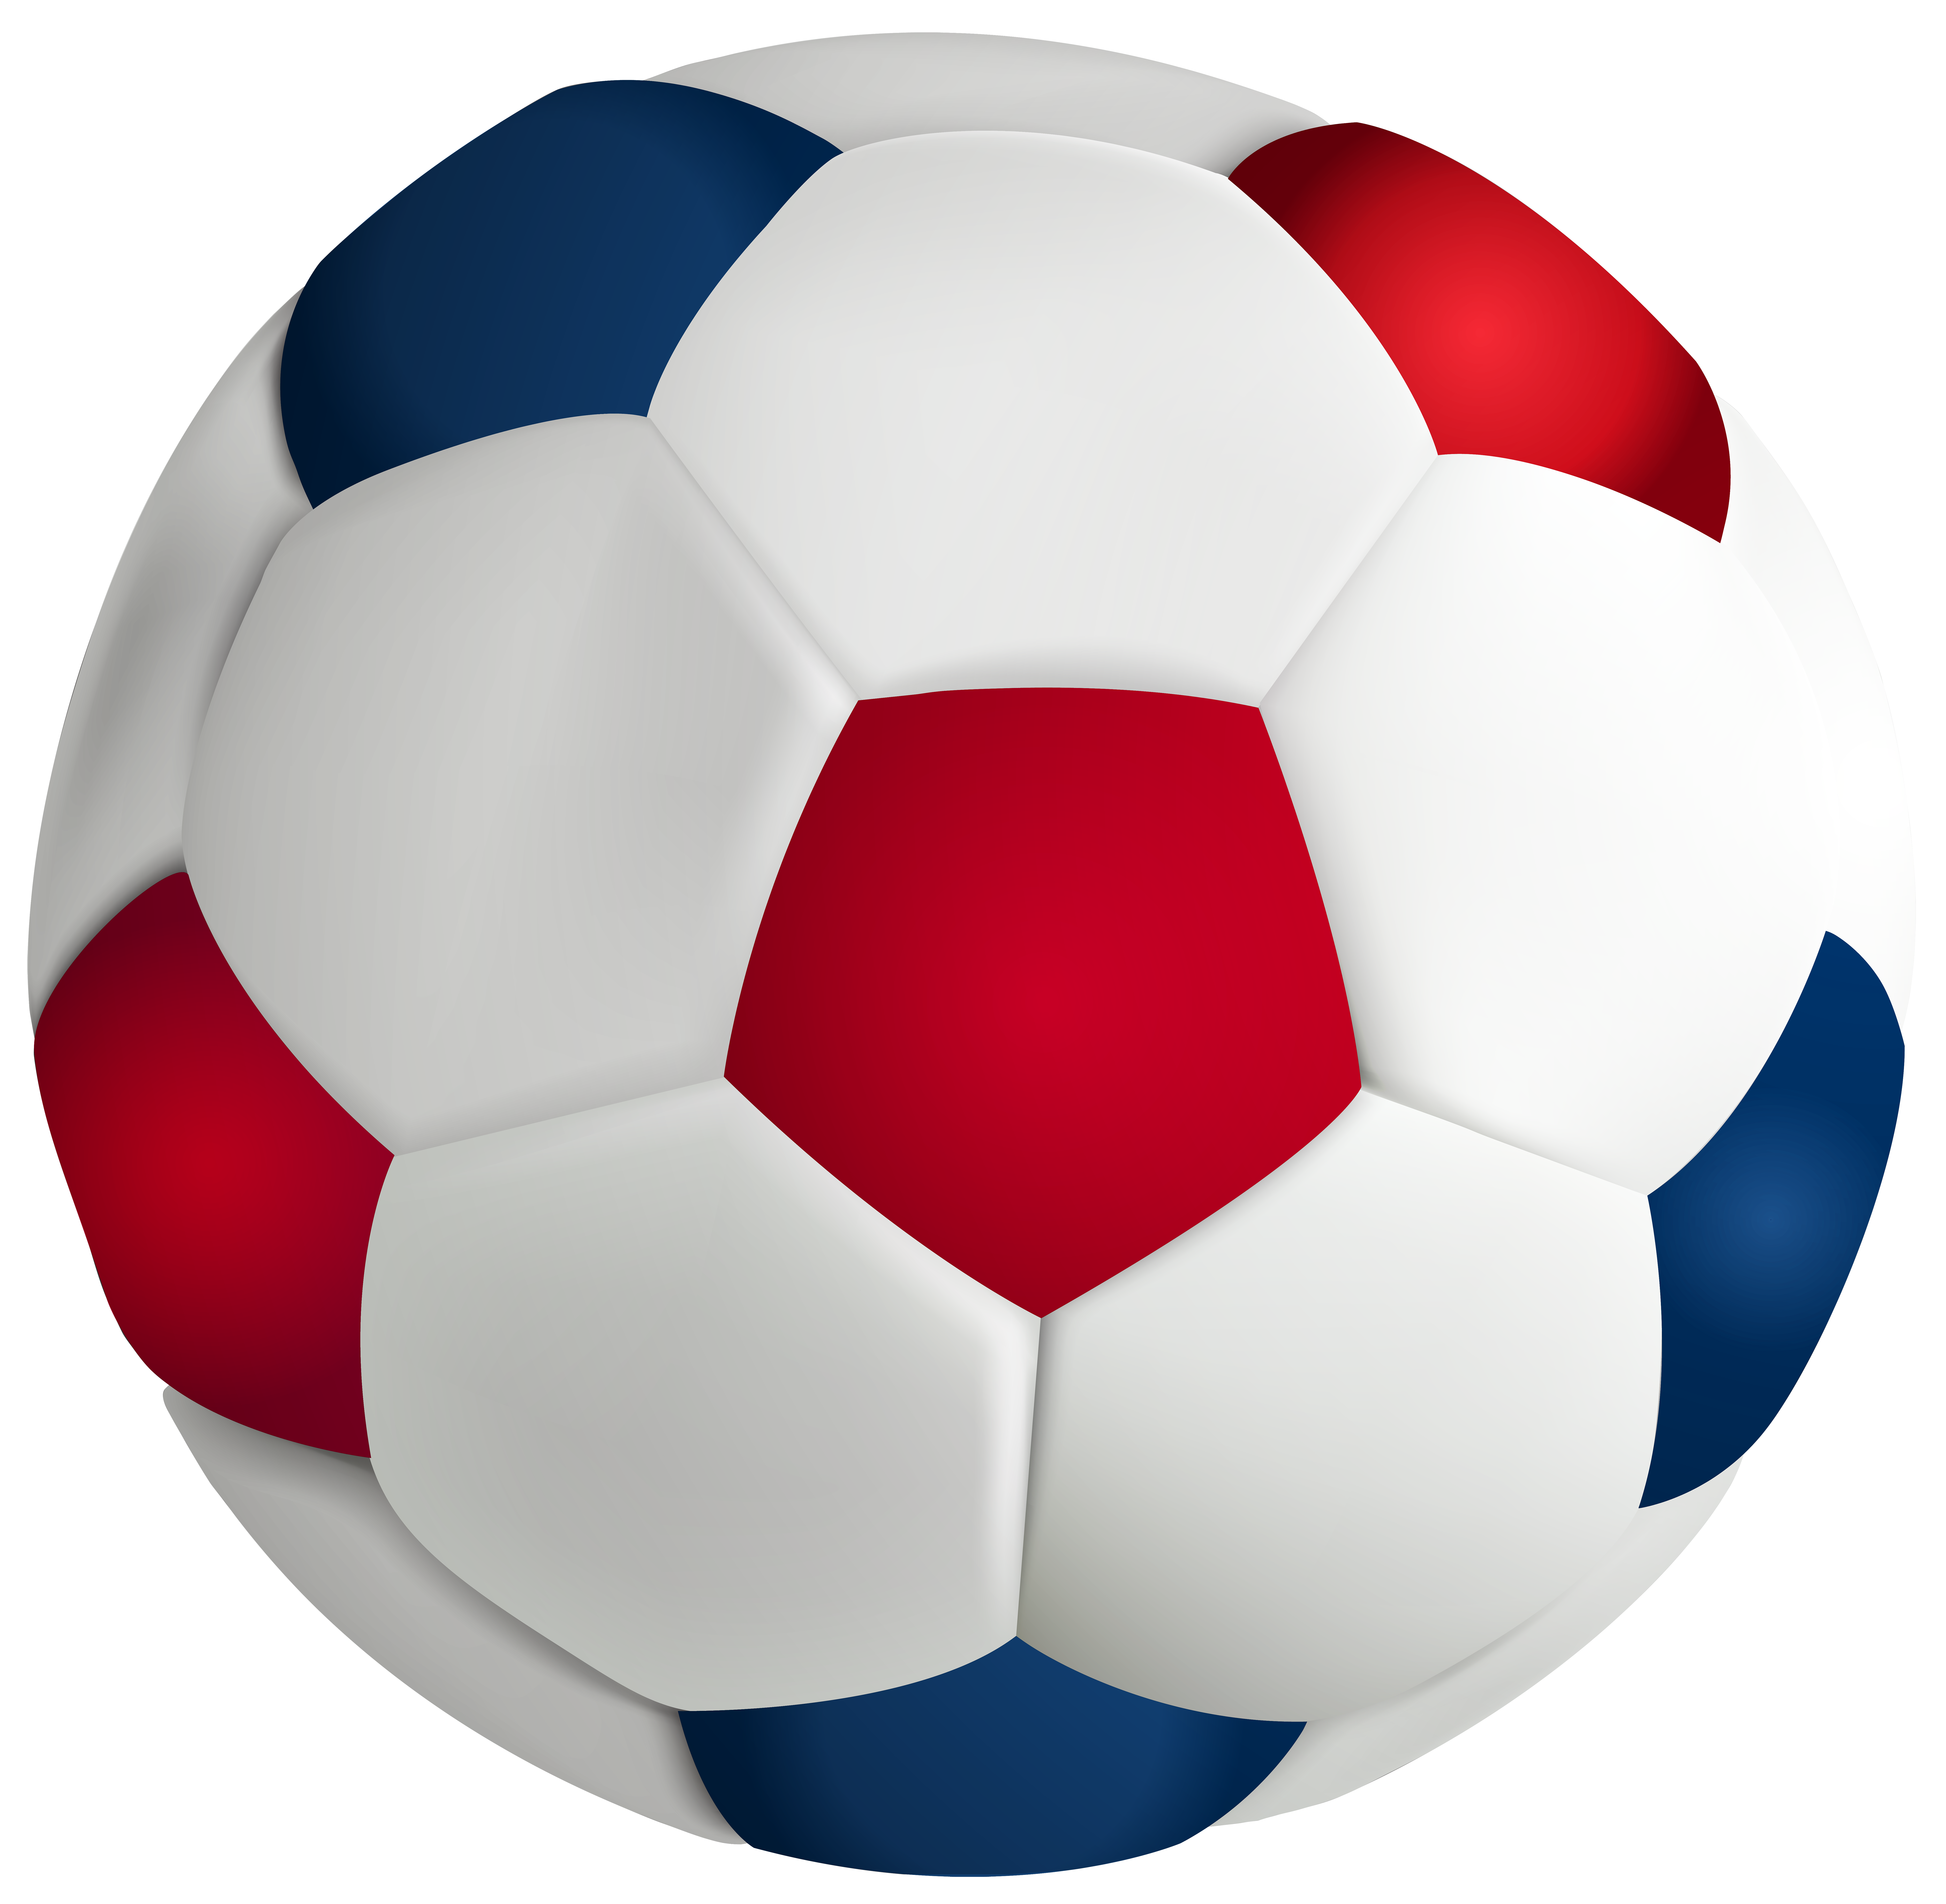 France clipart red. Euro ball png transparent